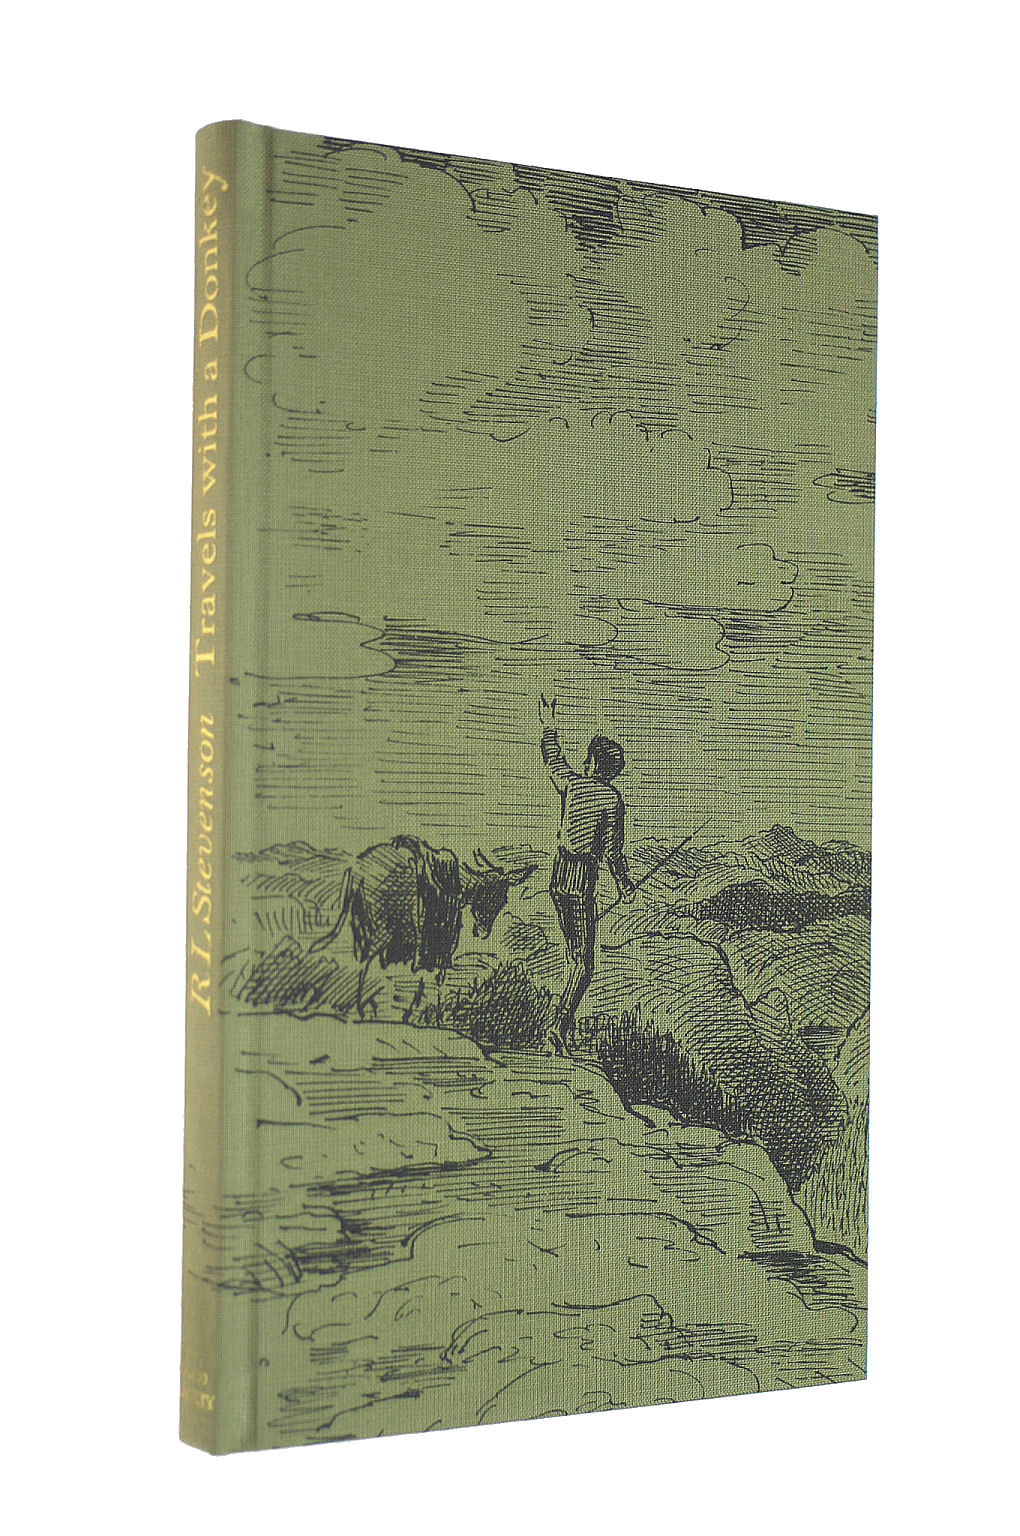 Image for Travels with a donkey in the Cevennes